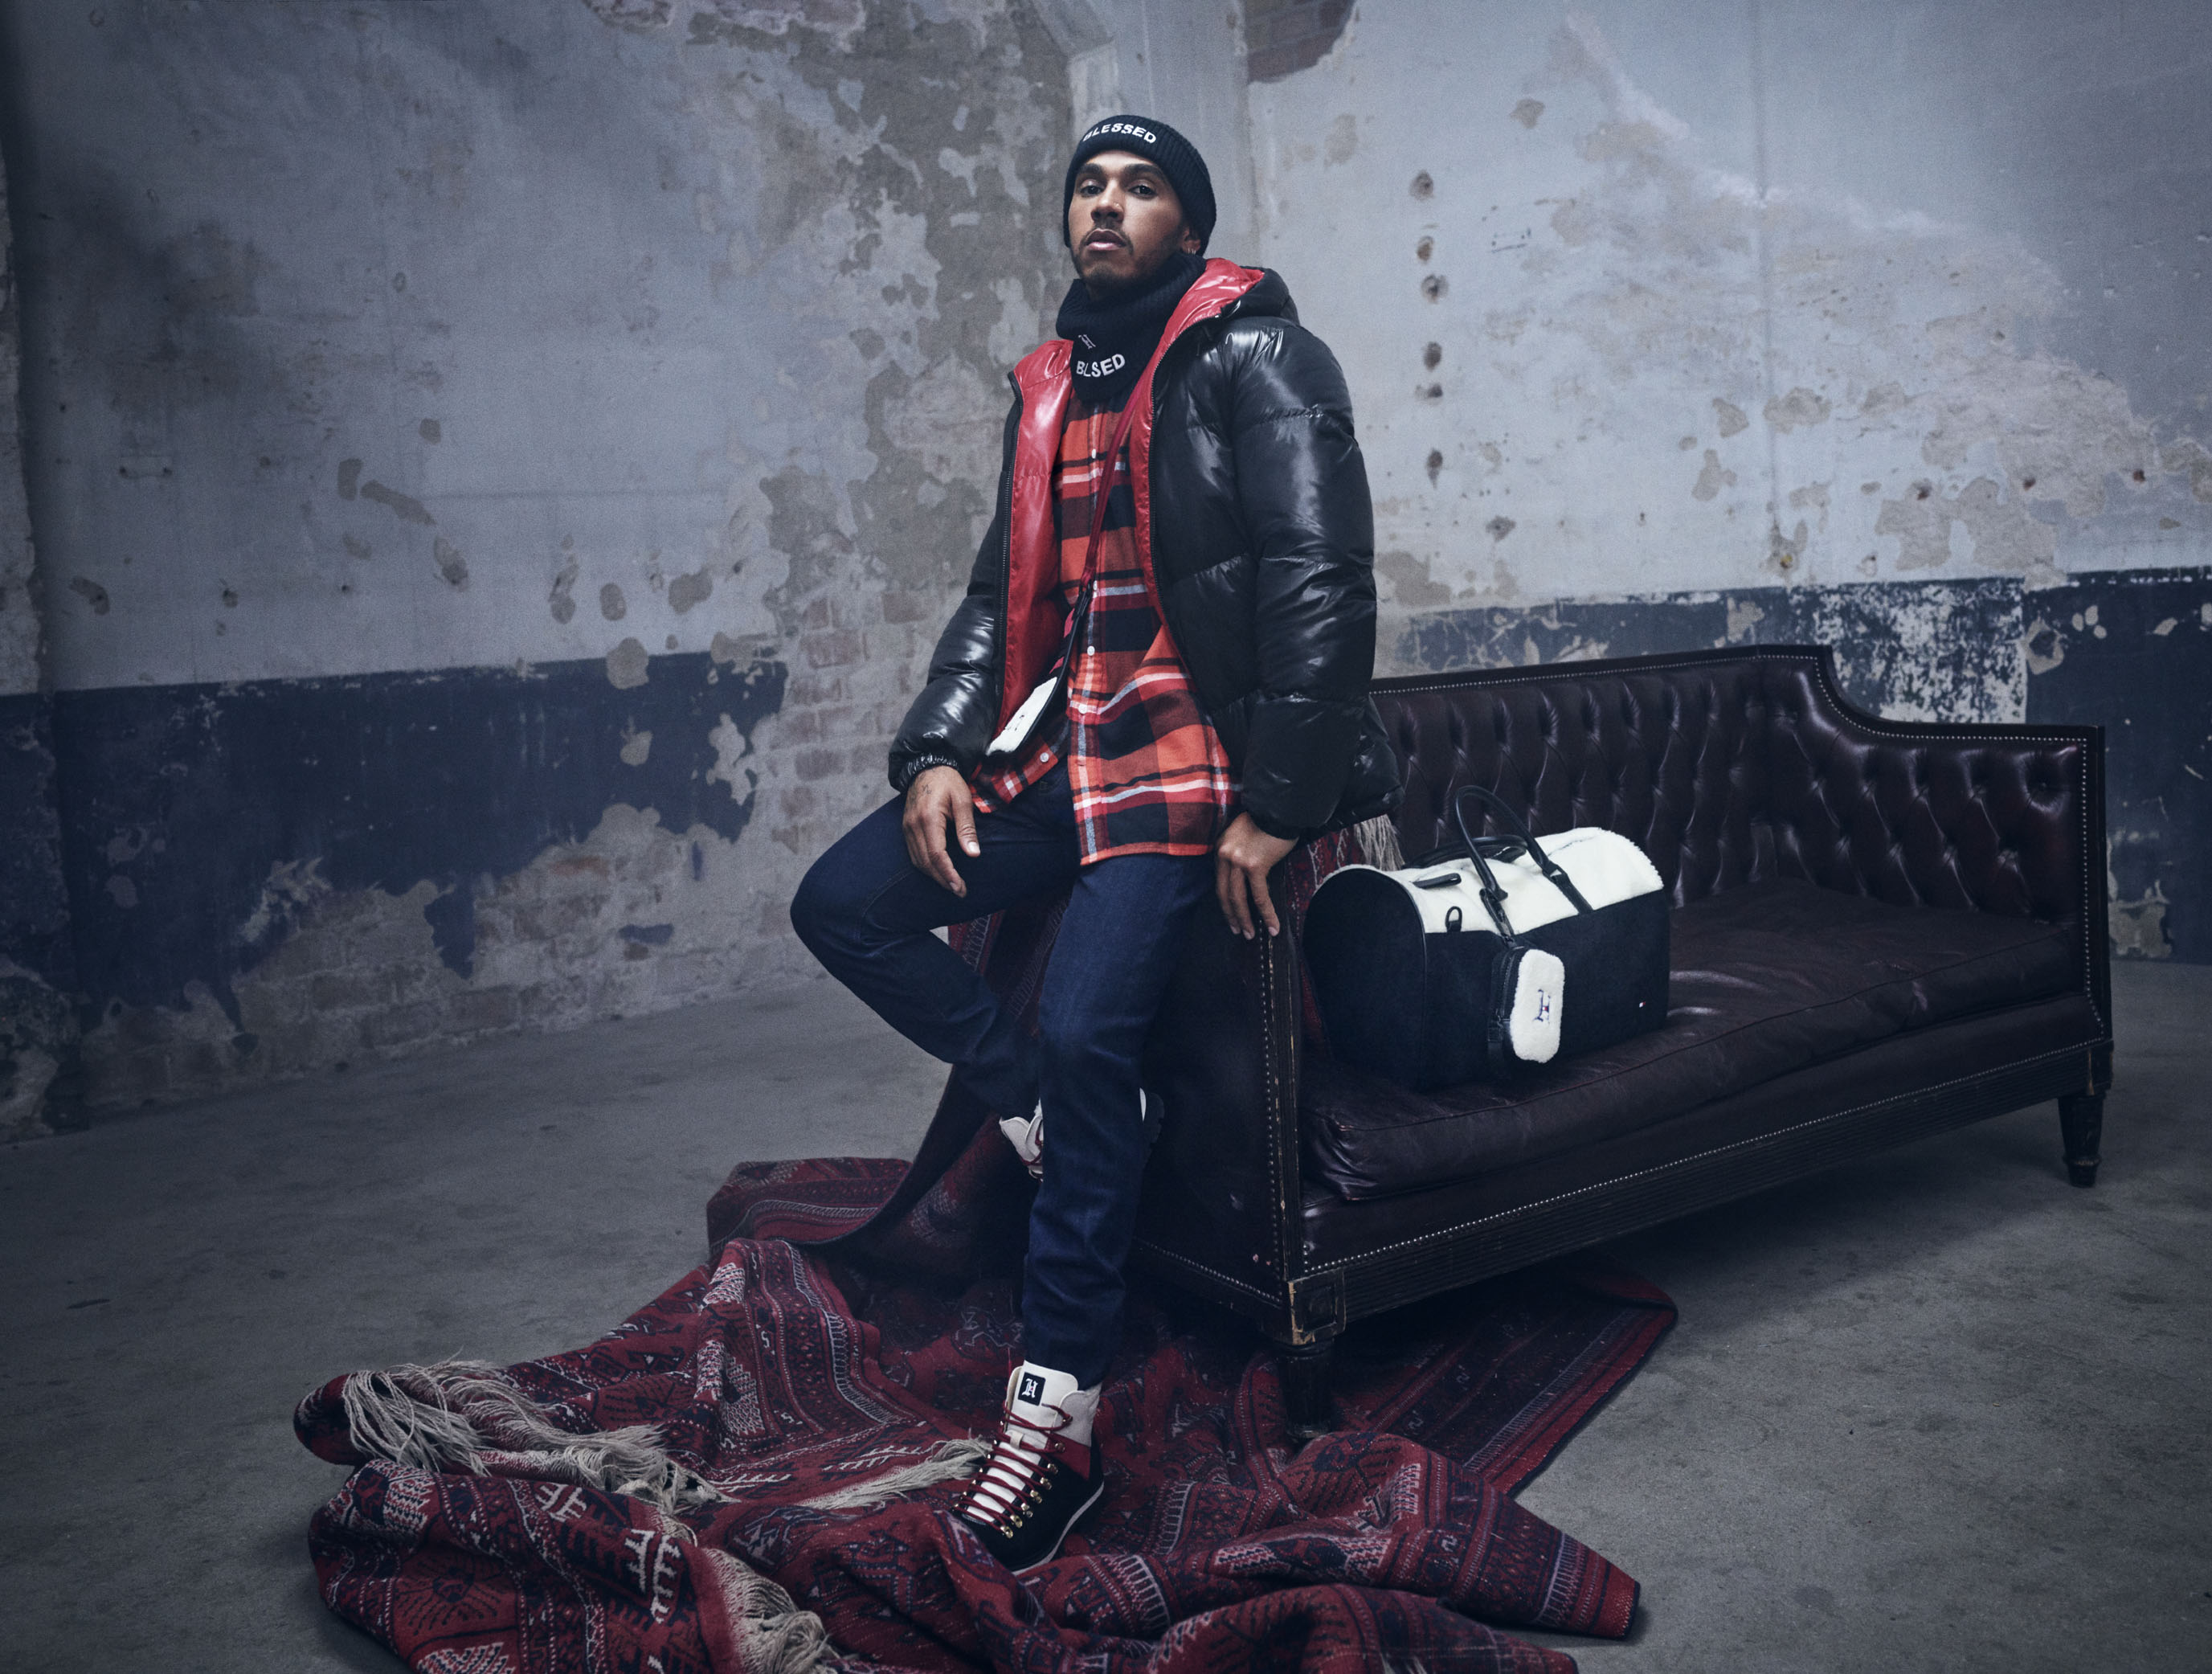 TOMMY HILFIGER AND LEWIS HAMILTON PRESENT FALL 2019 TOMMYXLEWIS COLLABORATIVE COLLECTION IN MILAN FW19 LH MSW 01 72 SRGB